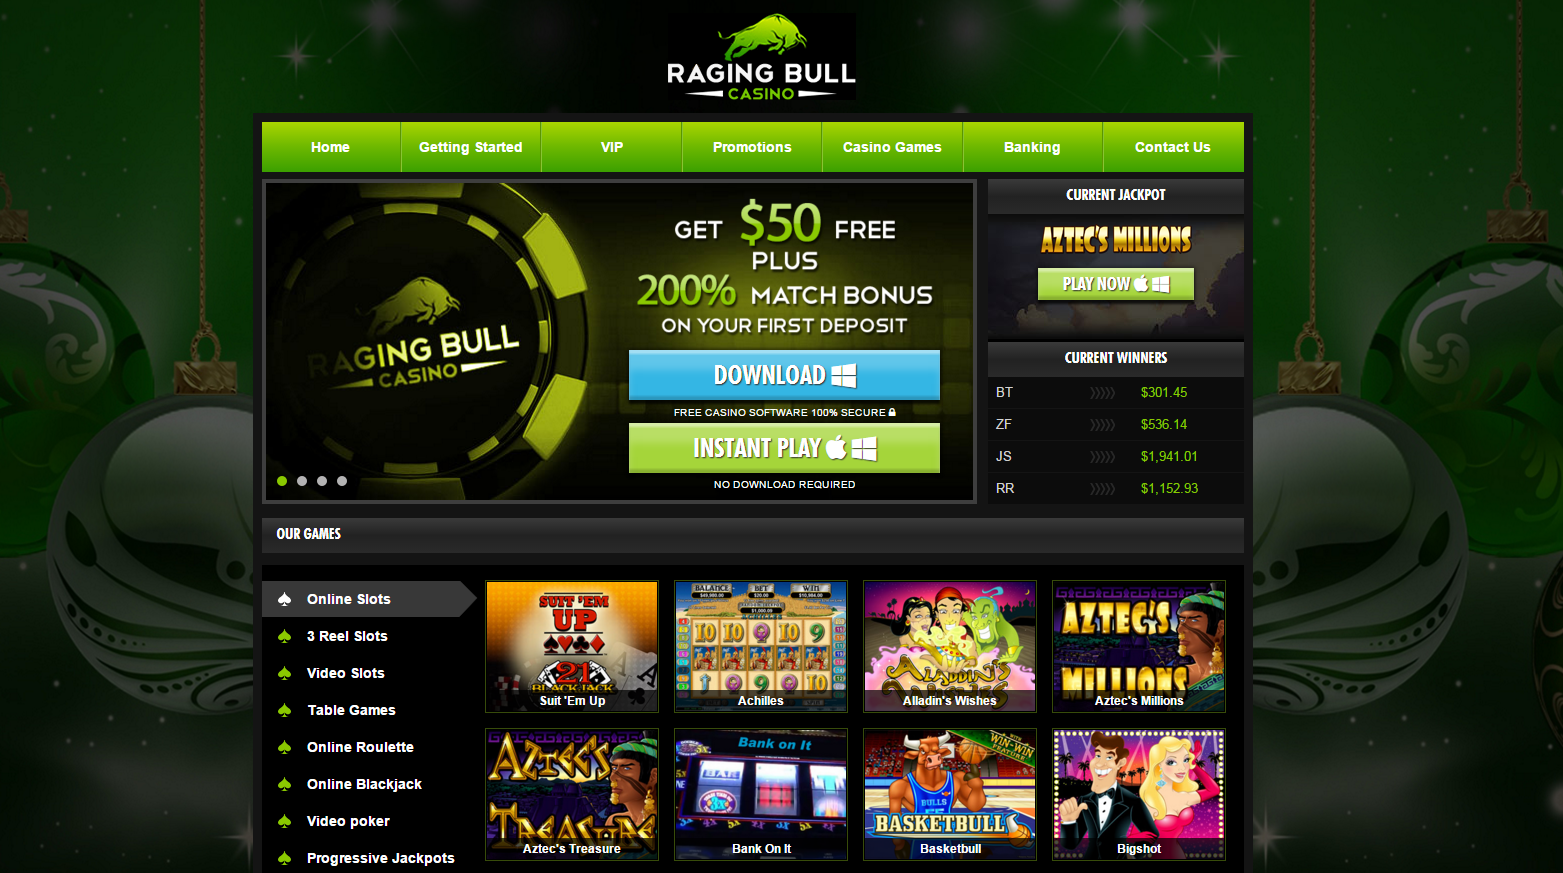 raging bull casino mobile app